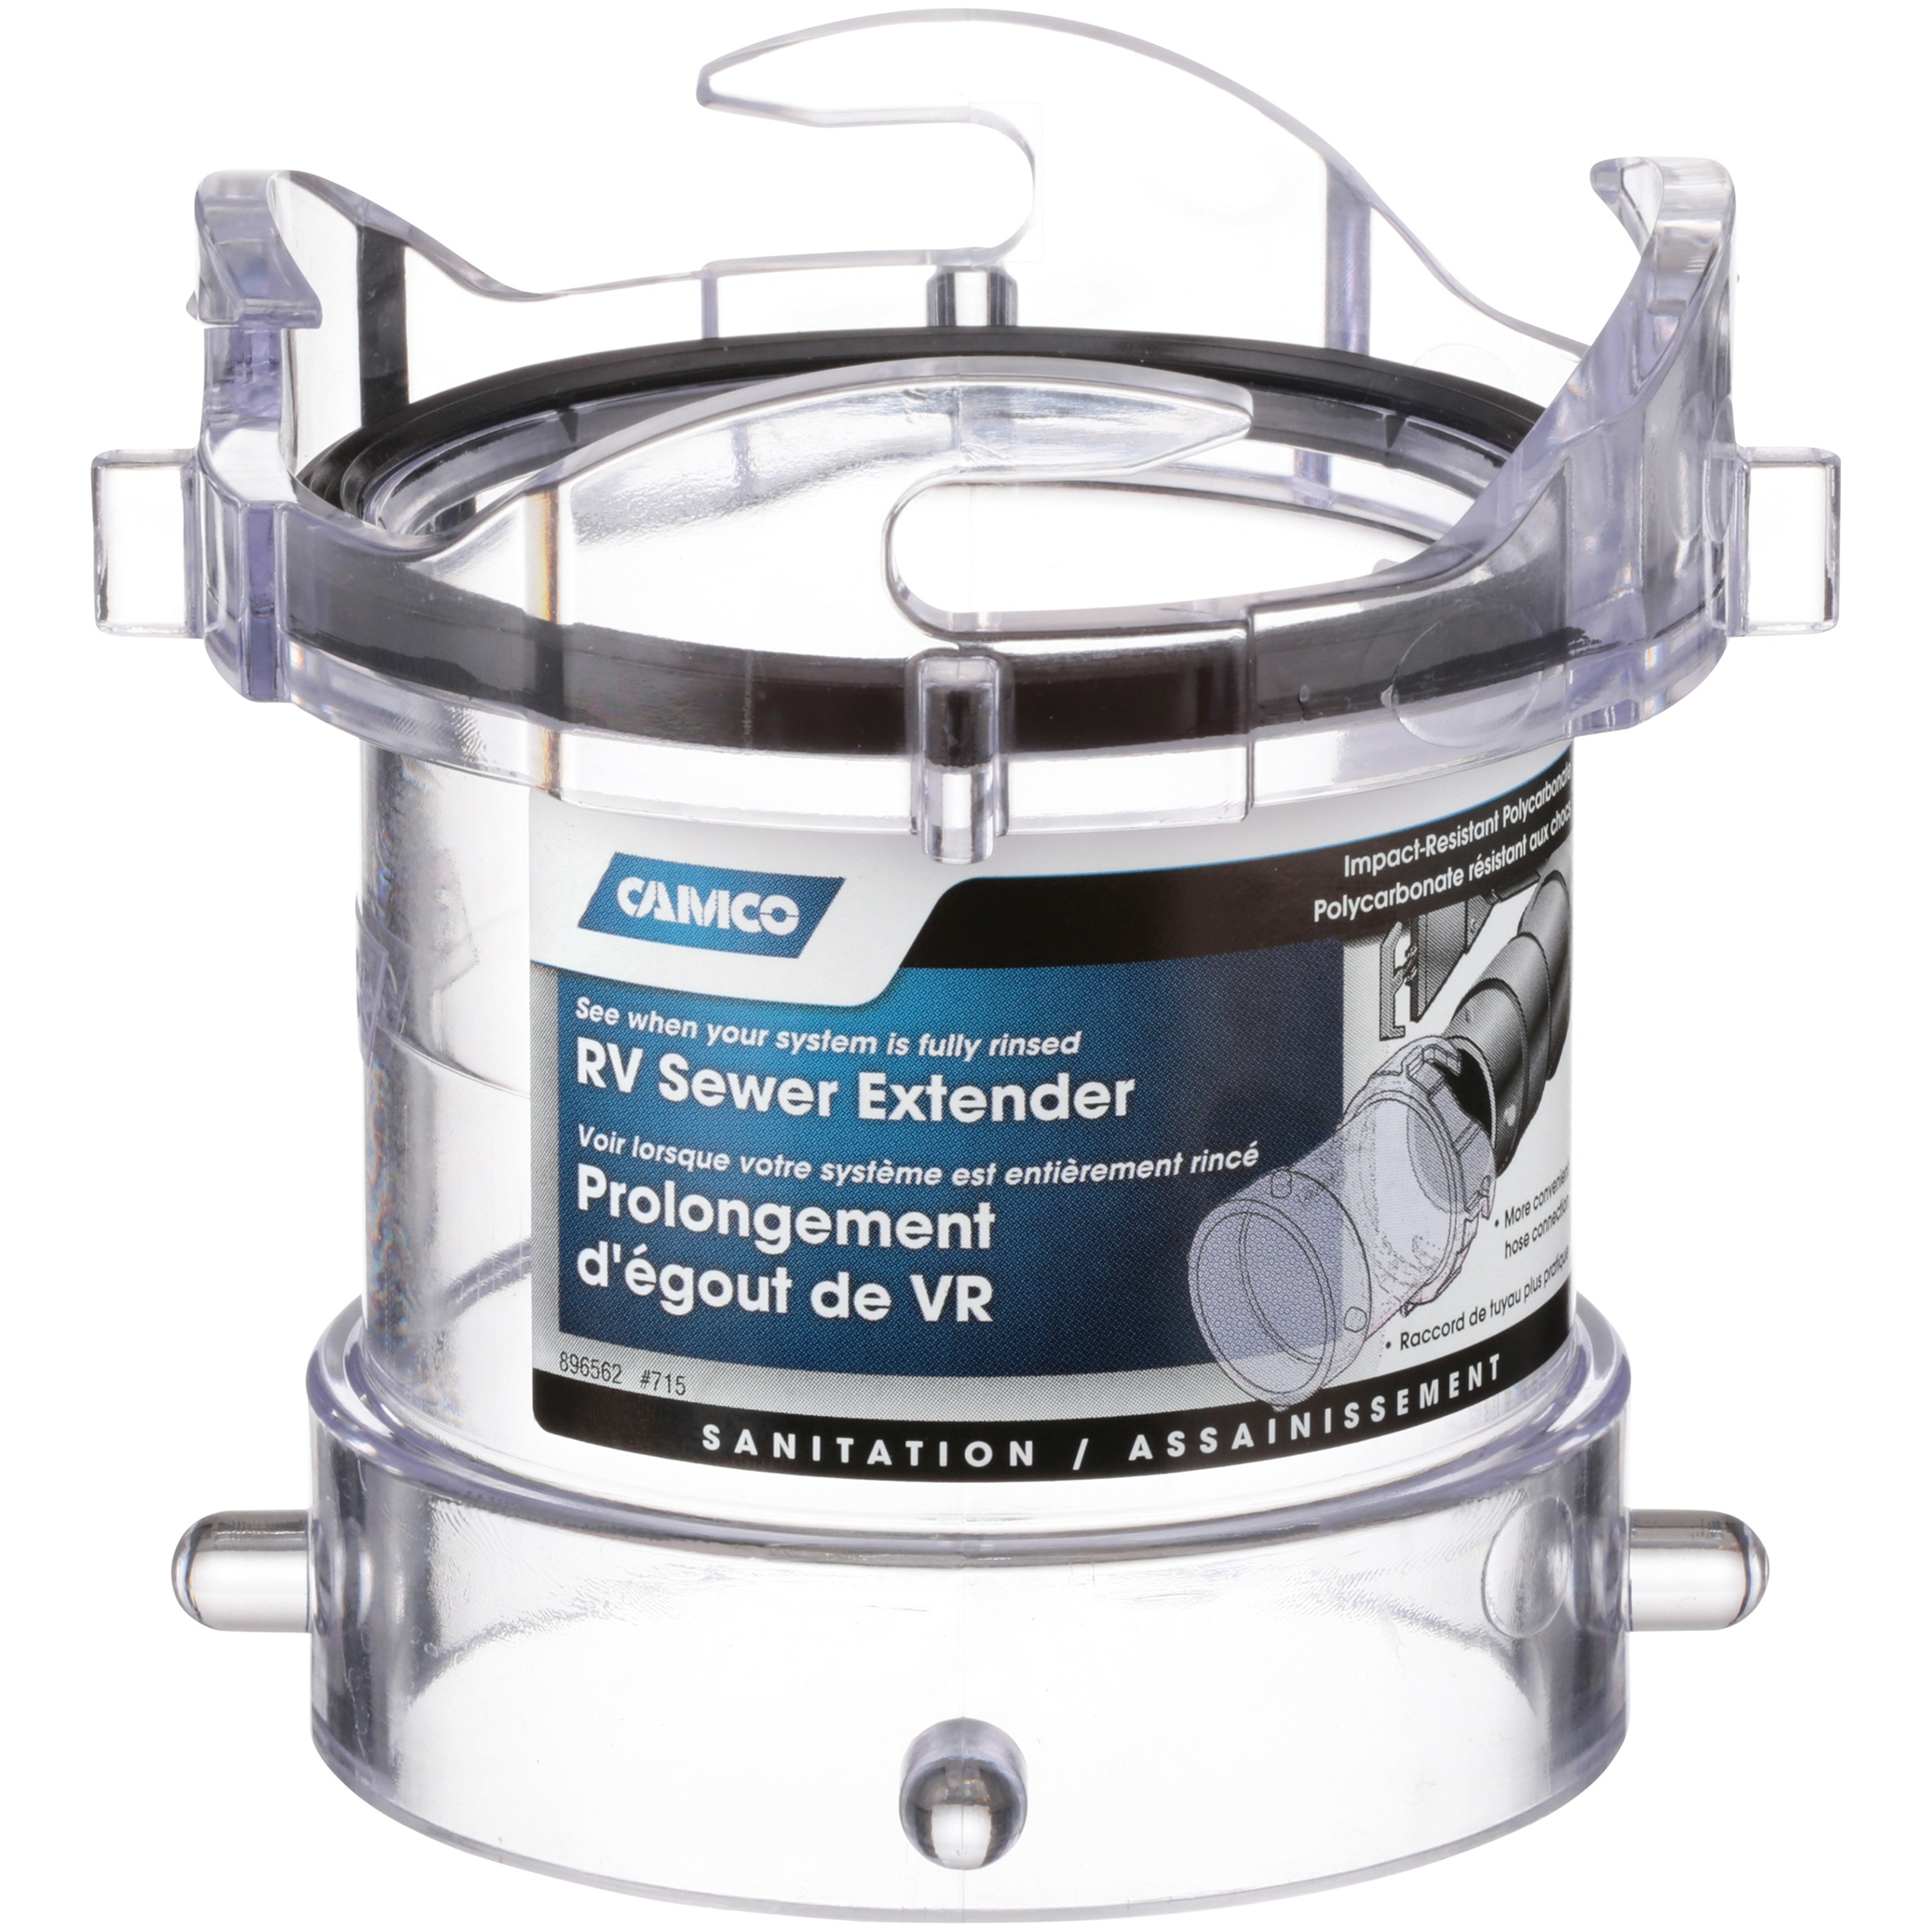 Camco RV Sewer Extender